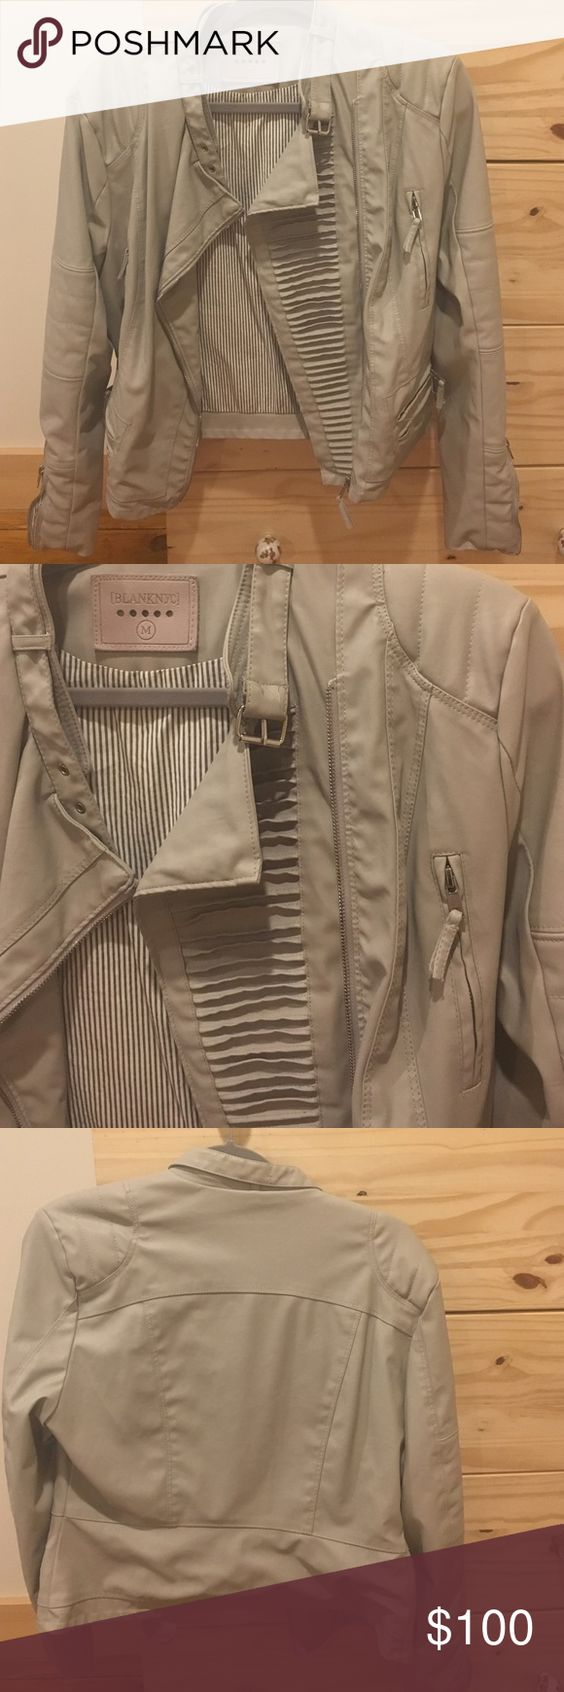 Blanknyc Leather coat Beautiful neutral leather jacket bought from South Moon Under, never been worn. Blank NYC Jackets & Coats